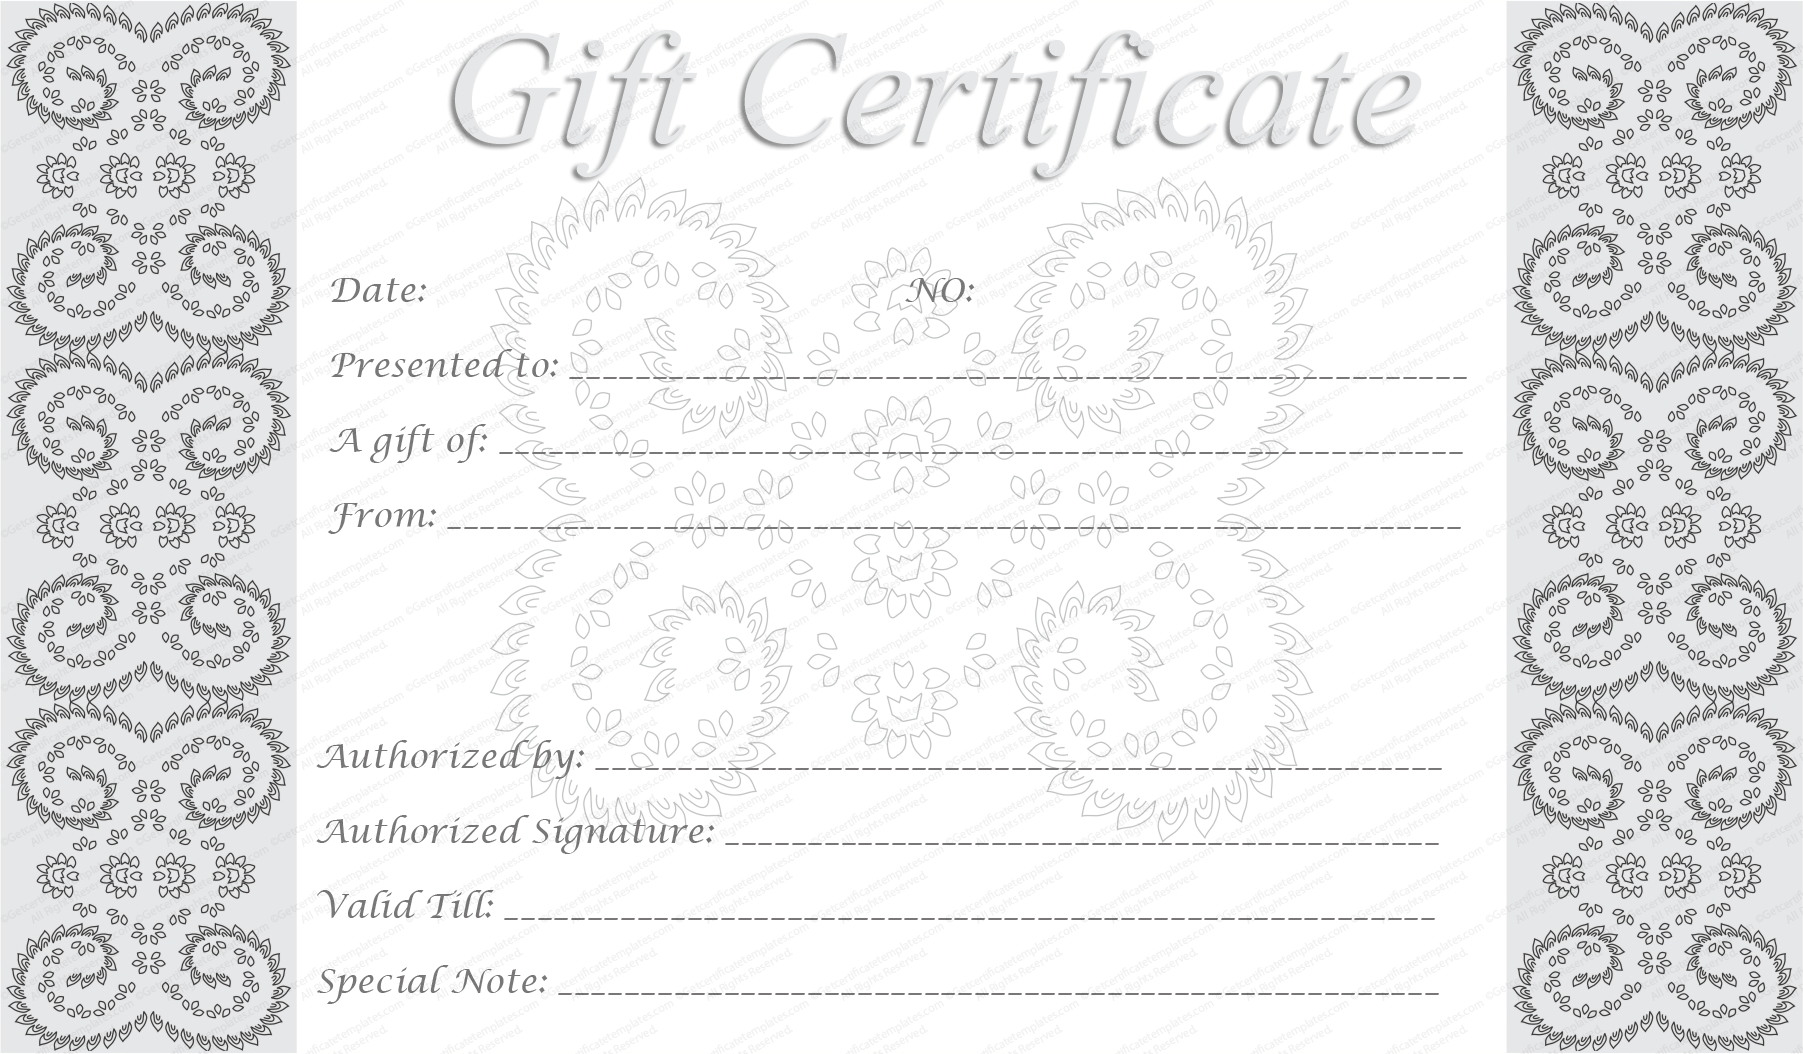 downloadable gift certificate template - editable and printable silver swirls gift certificate template